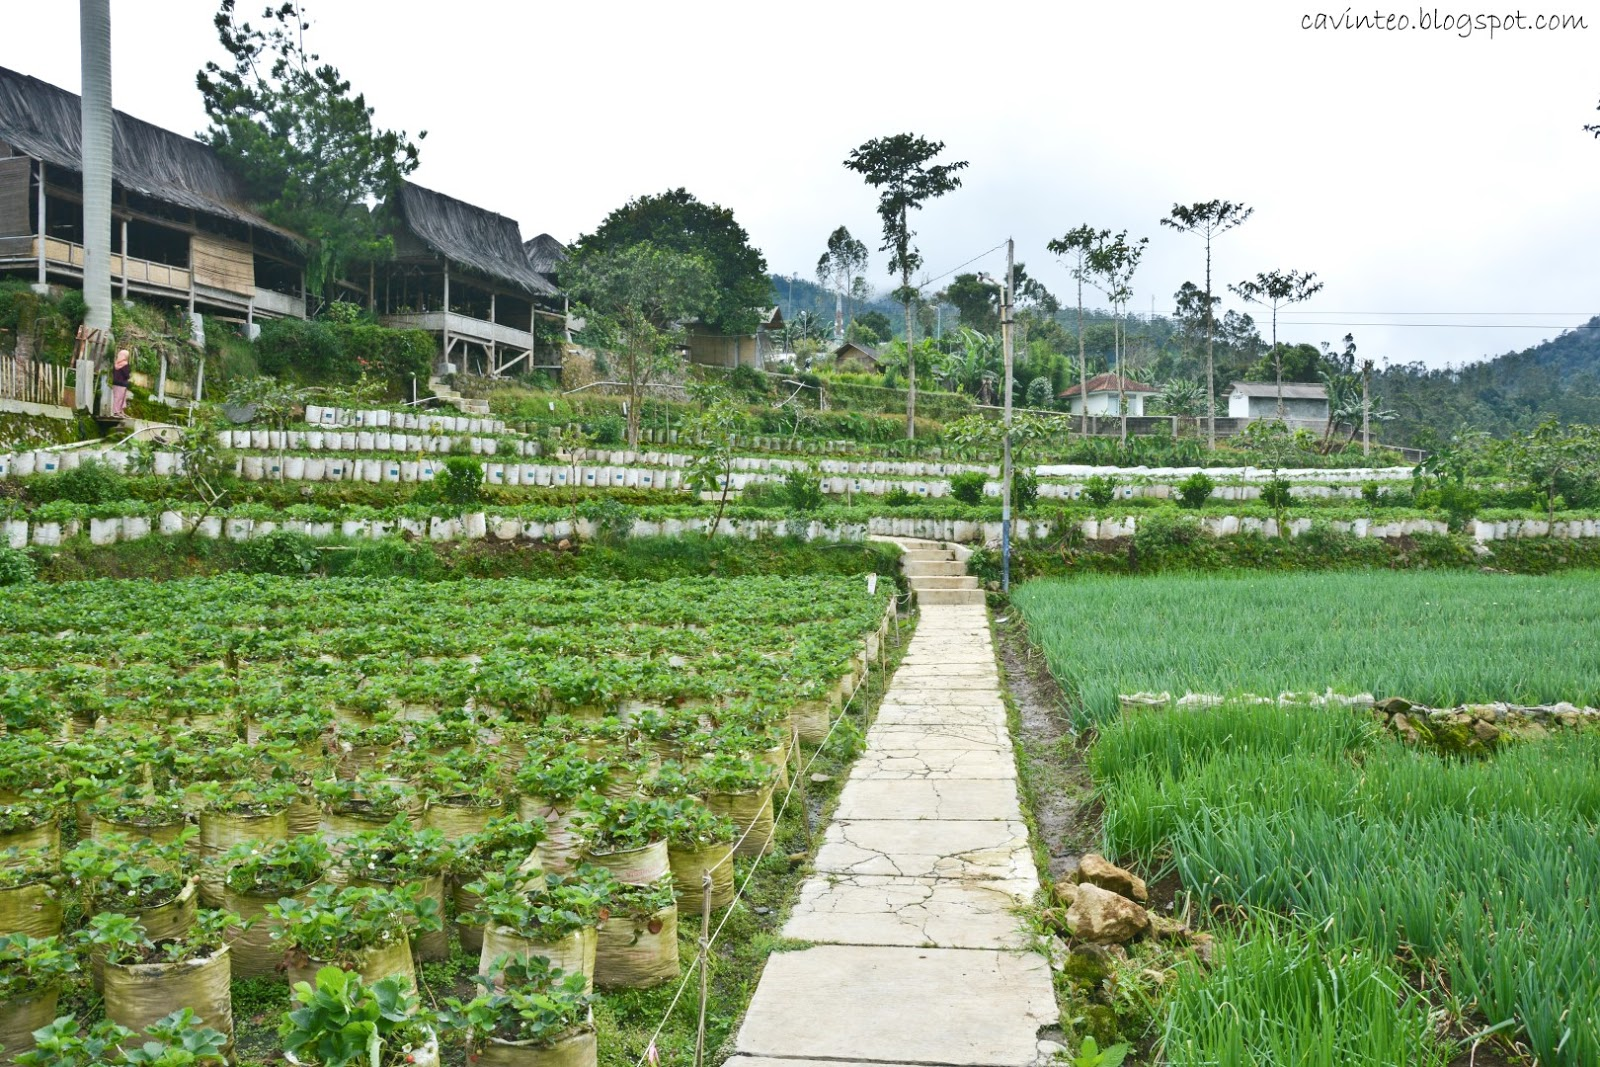 Entree Kibbles: Saung Gawir Restaurant - View of the Hills ...